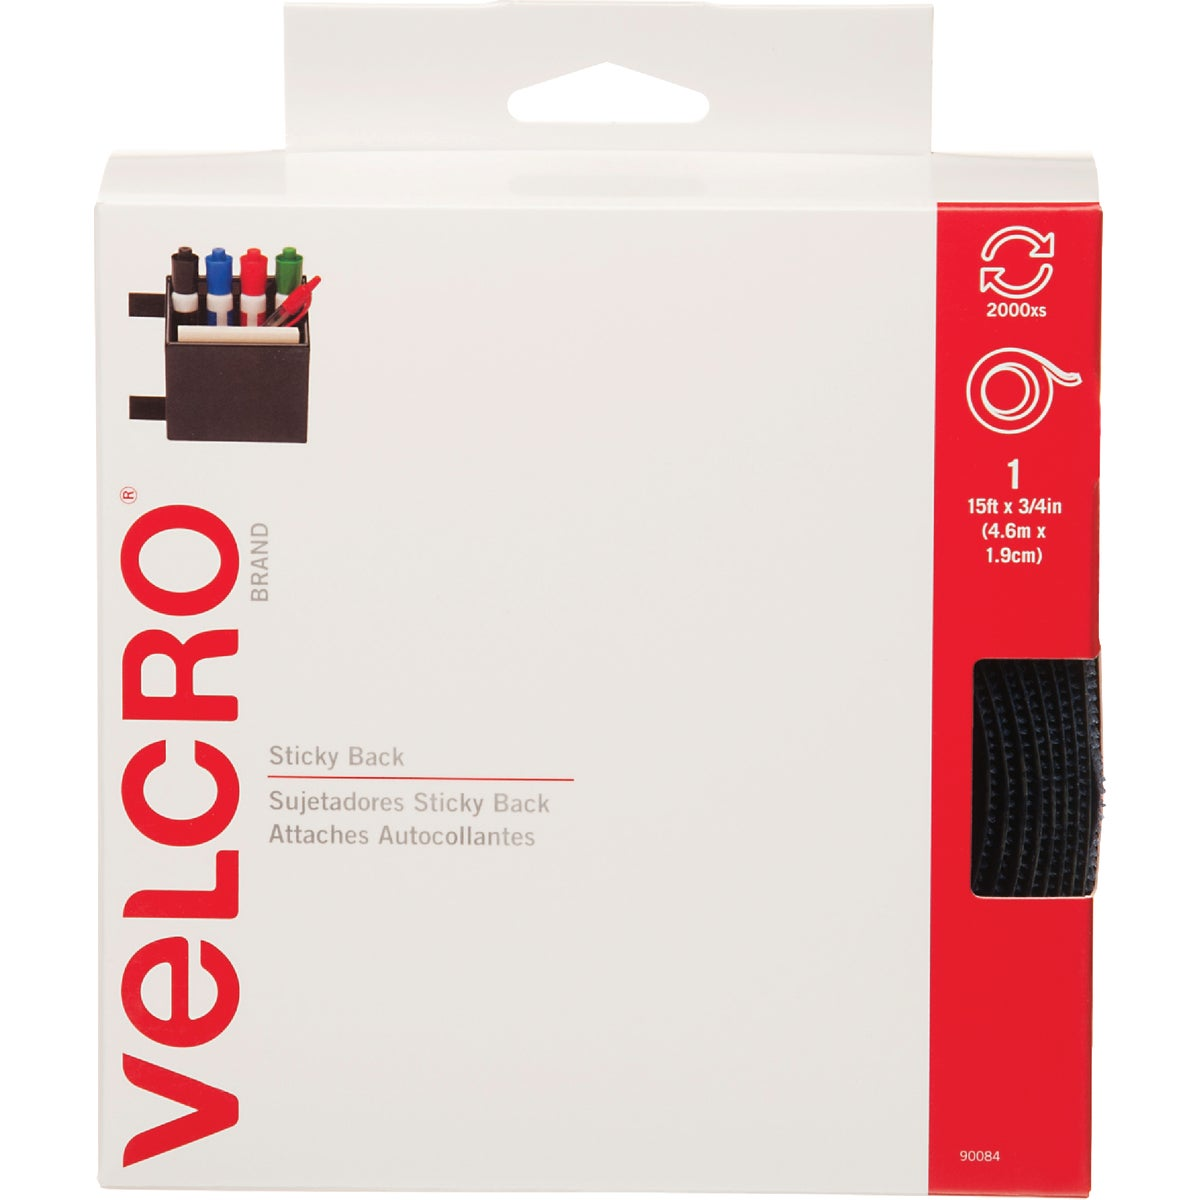 Velcro USA VELCRO brand Adhesive Backing Hook & Loop Tape